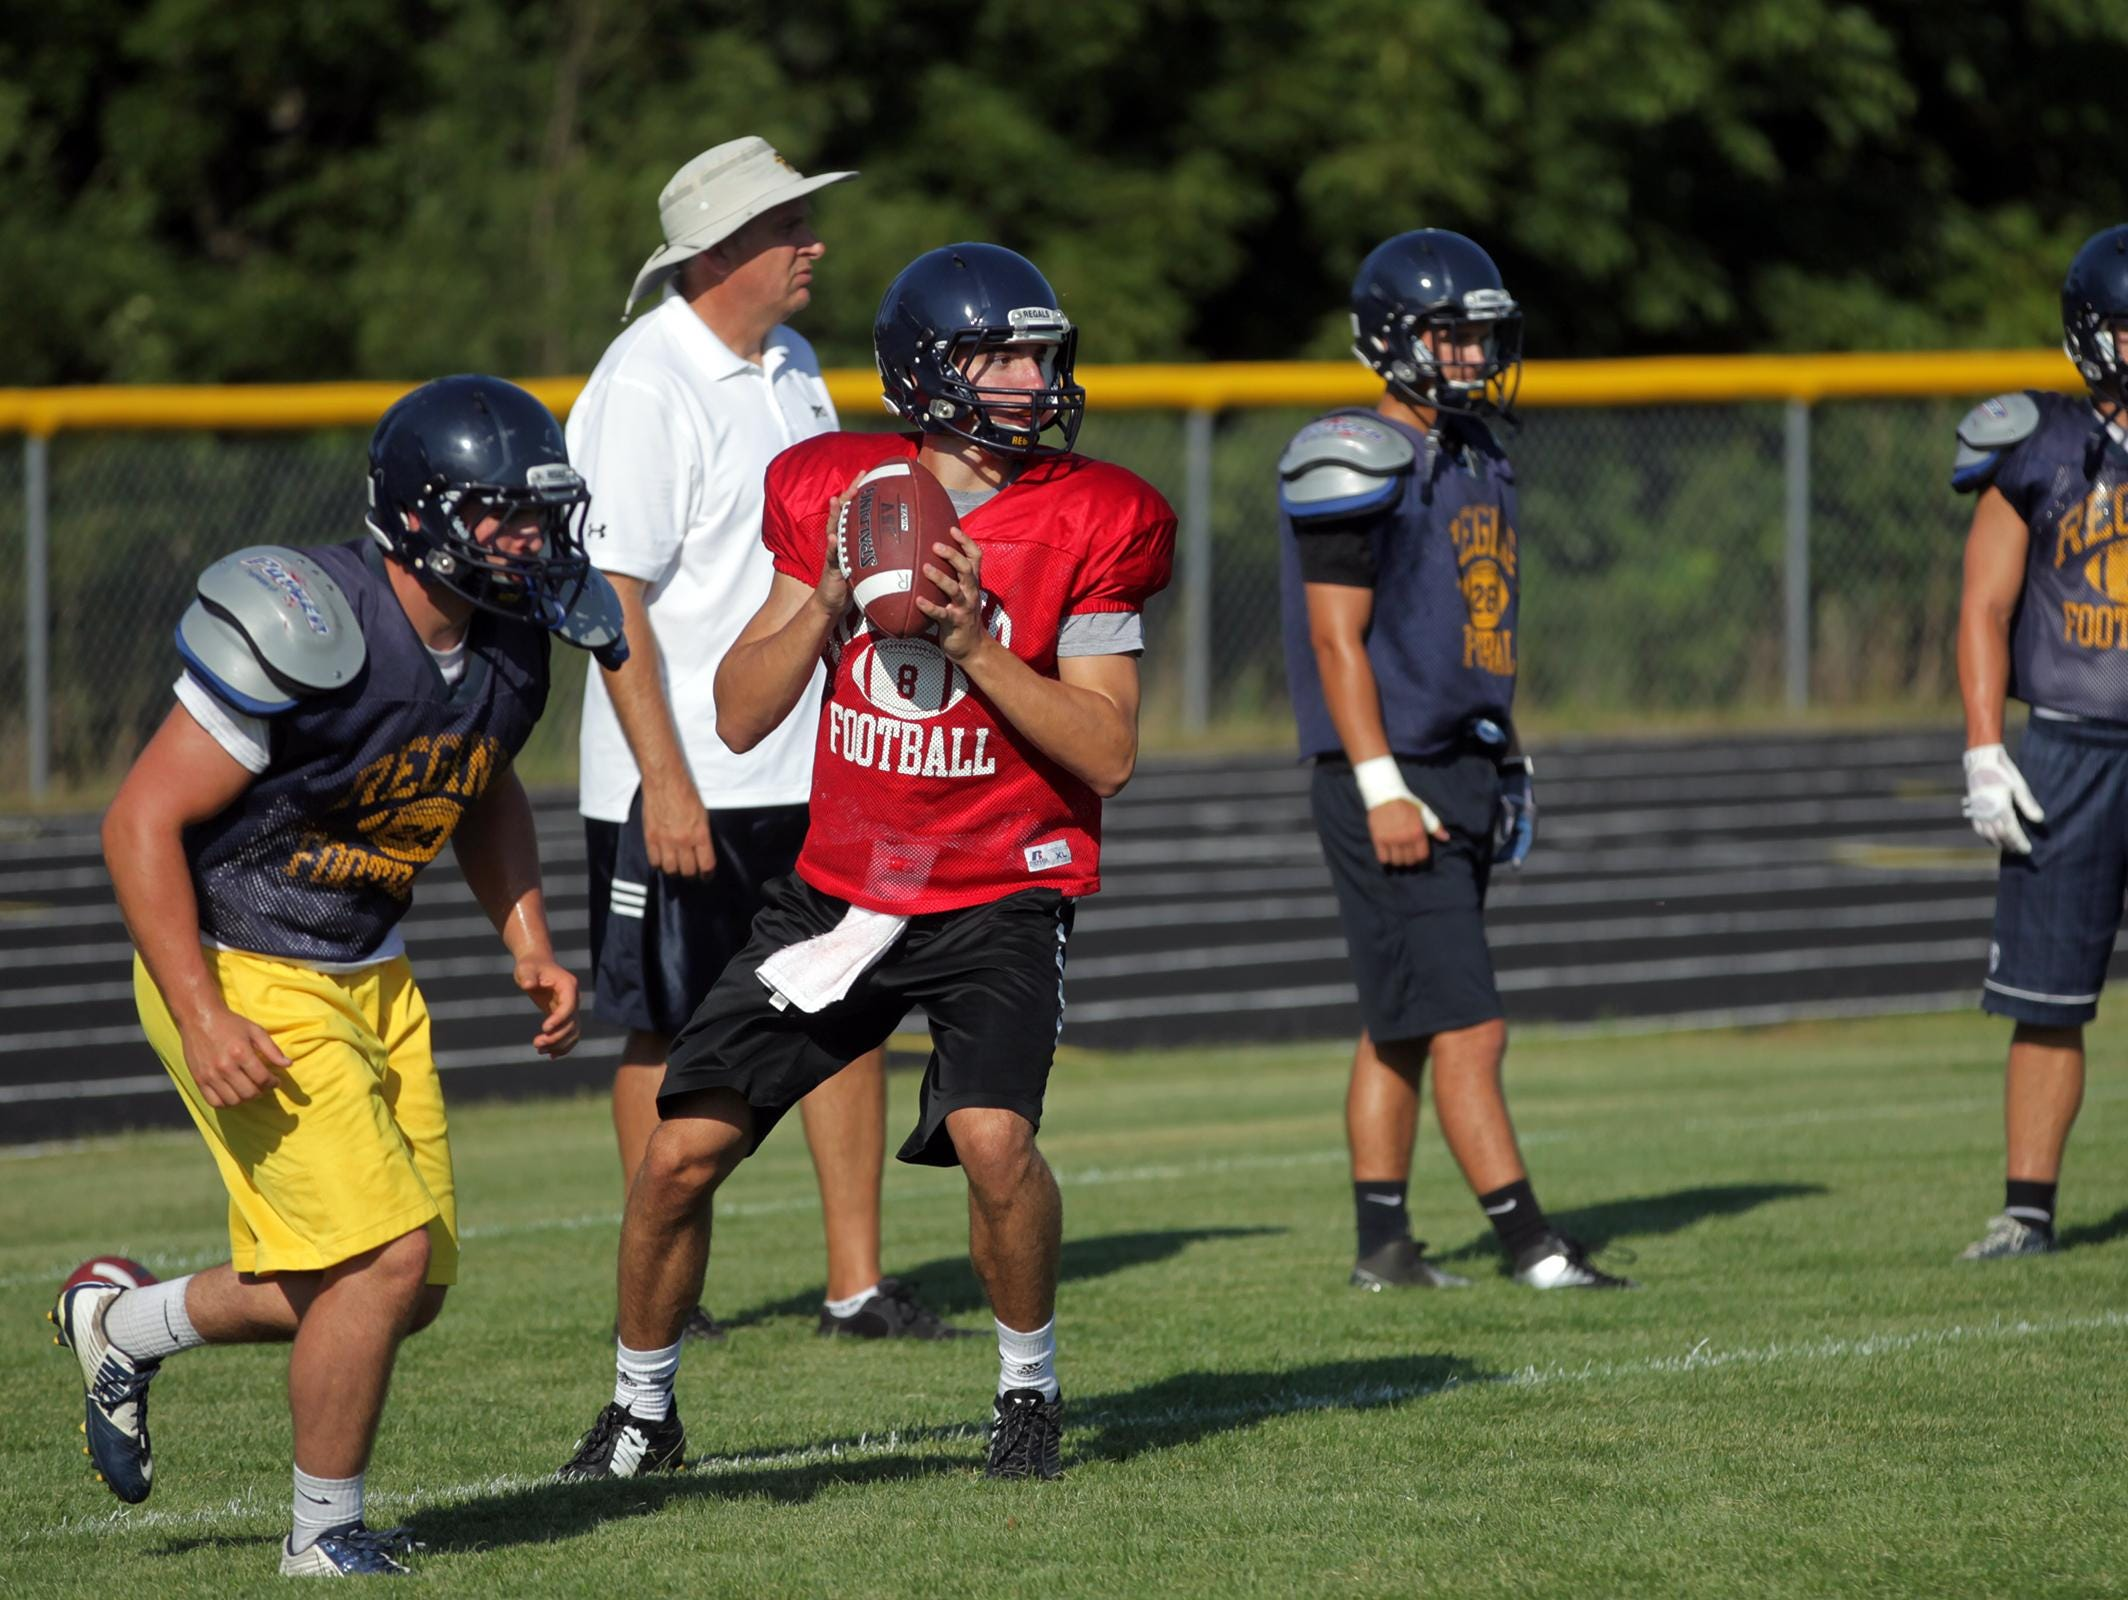 Regina quarterback Nathan Stenger looks for a receiver during practice on Wednesday, Aug. 12, 2015.